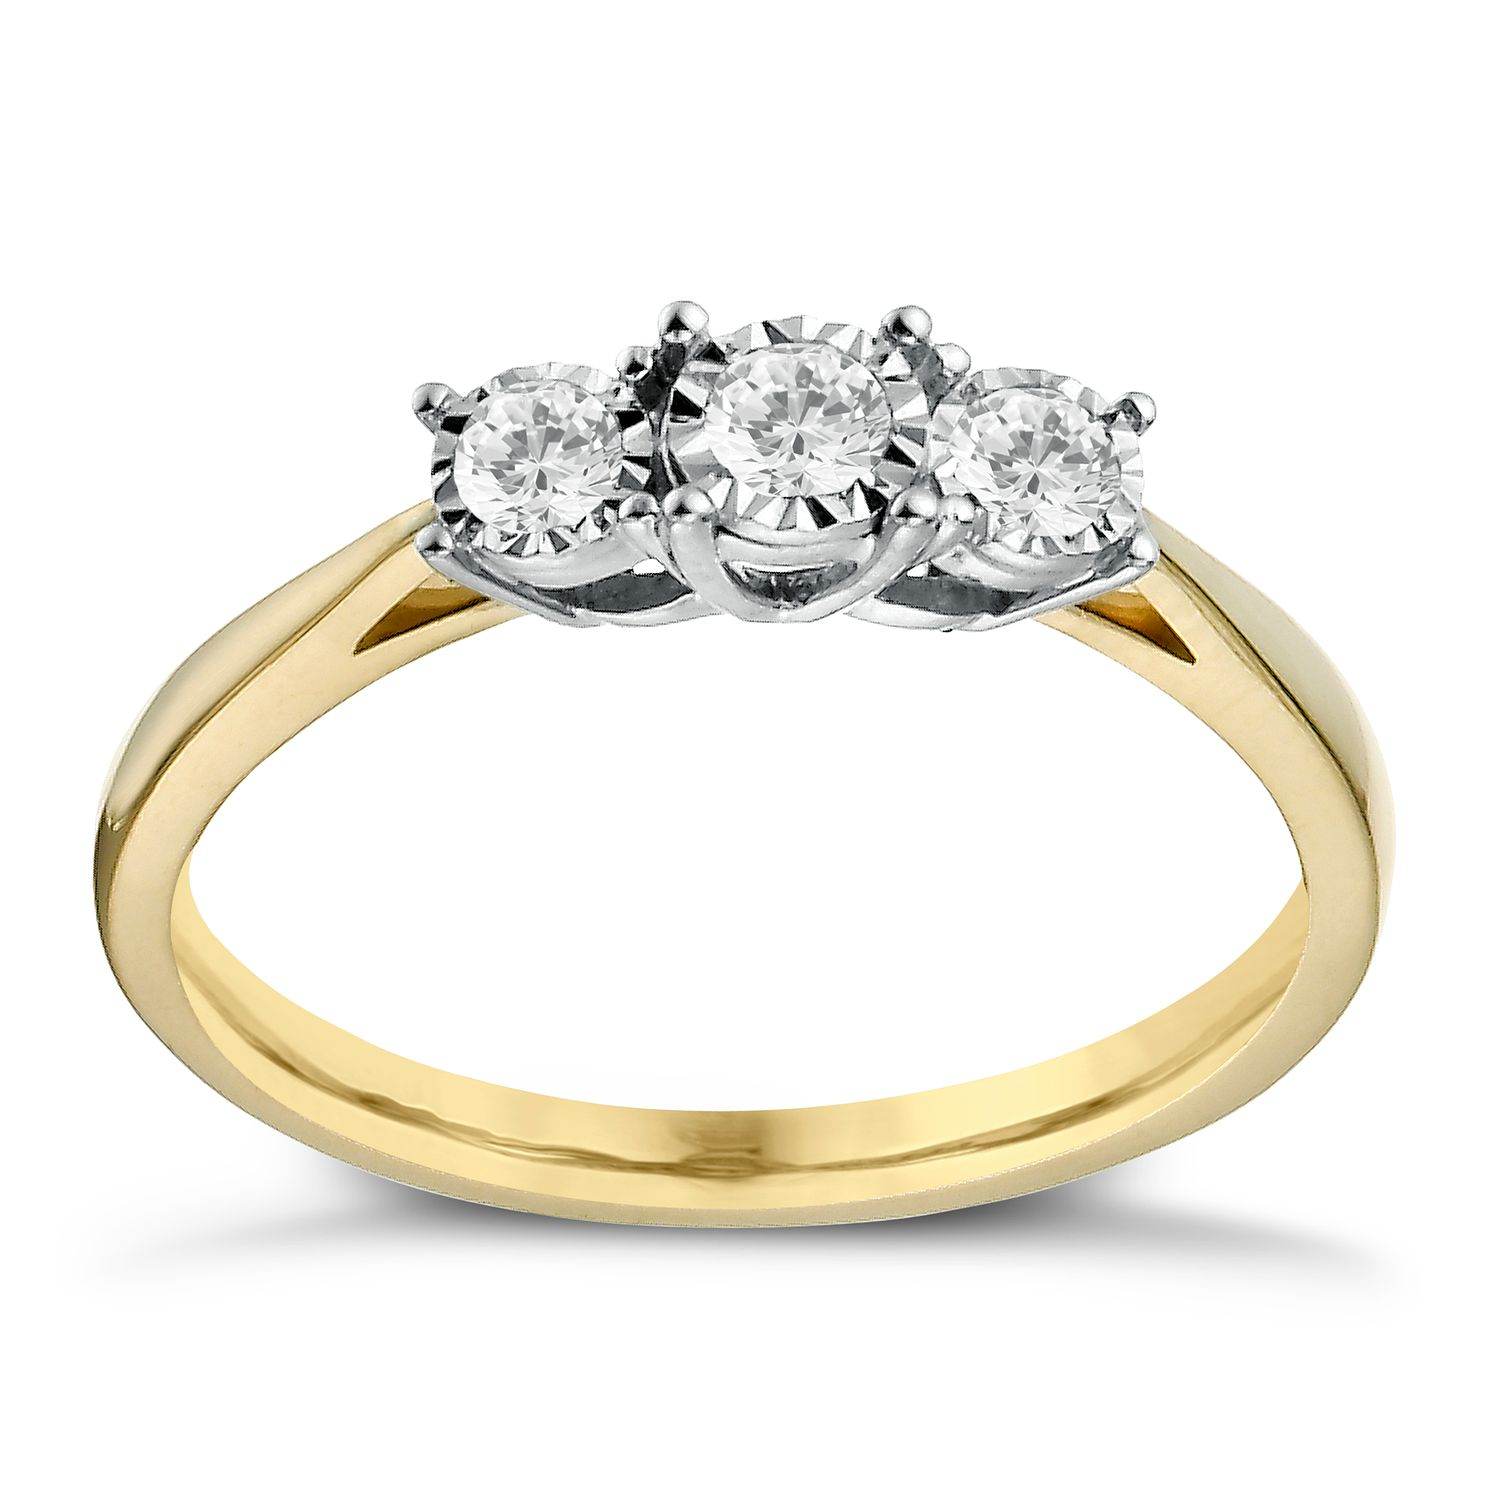 ct in sides cut jewellery pear with cushion stone diamond ring engagement center shape three stones platinum side white